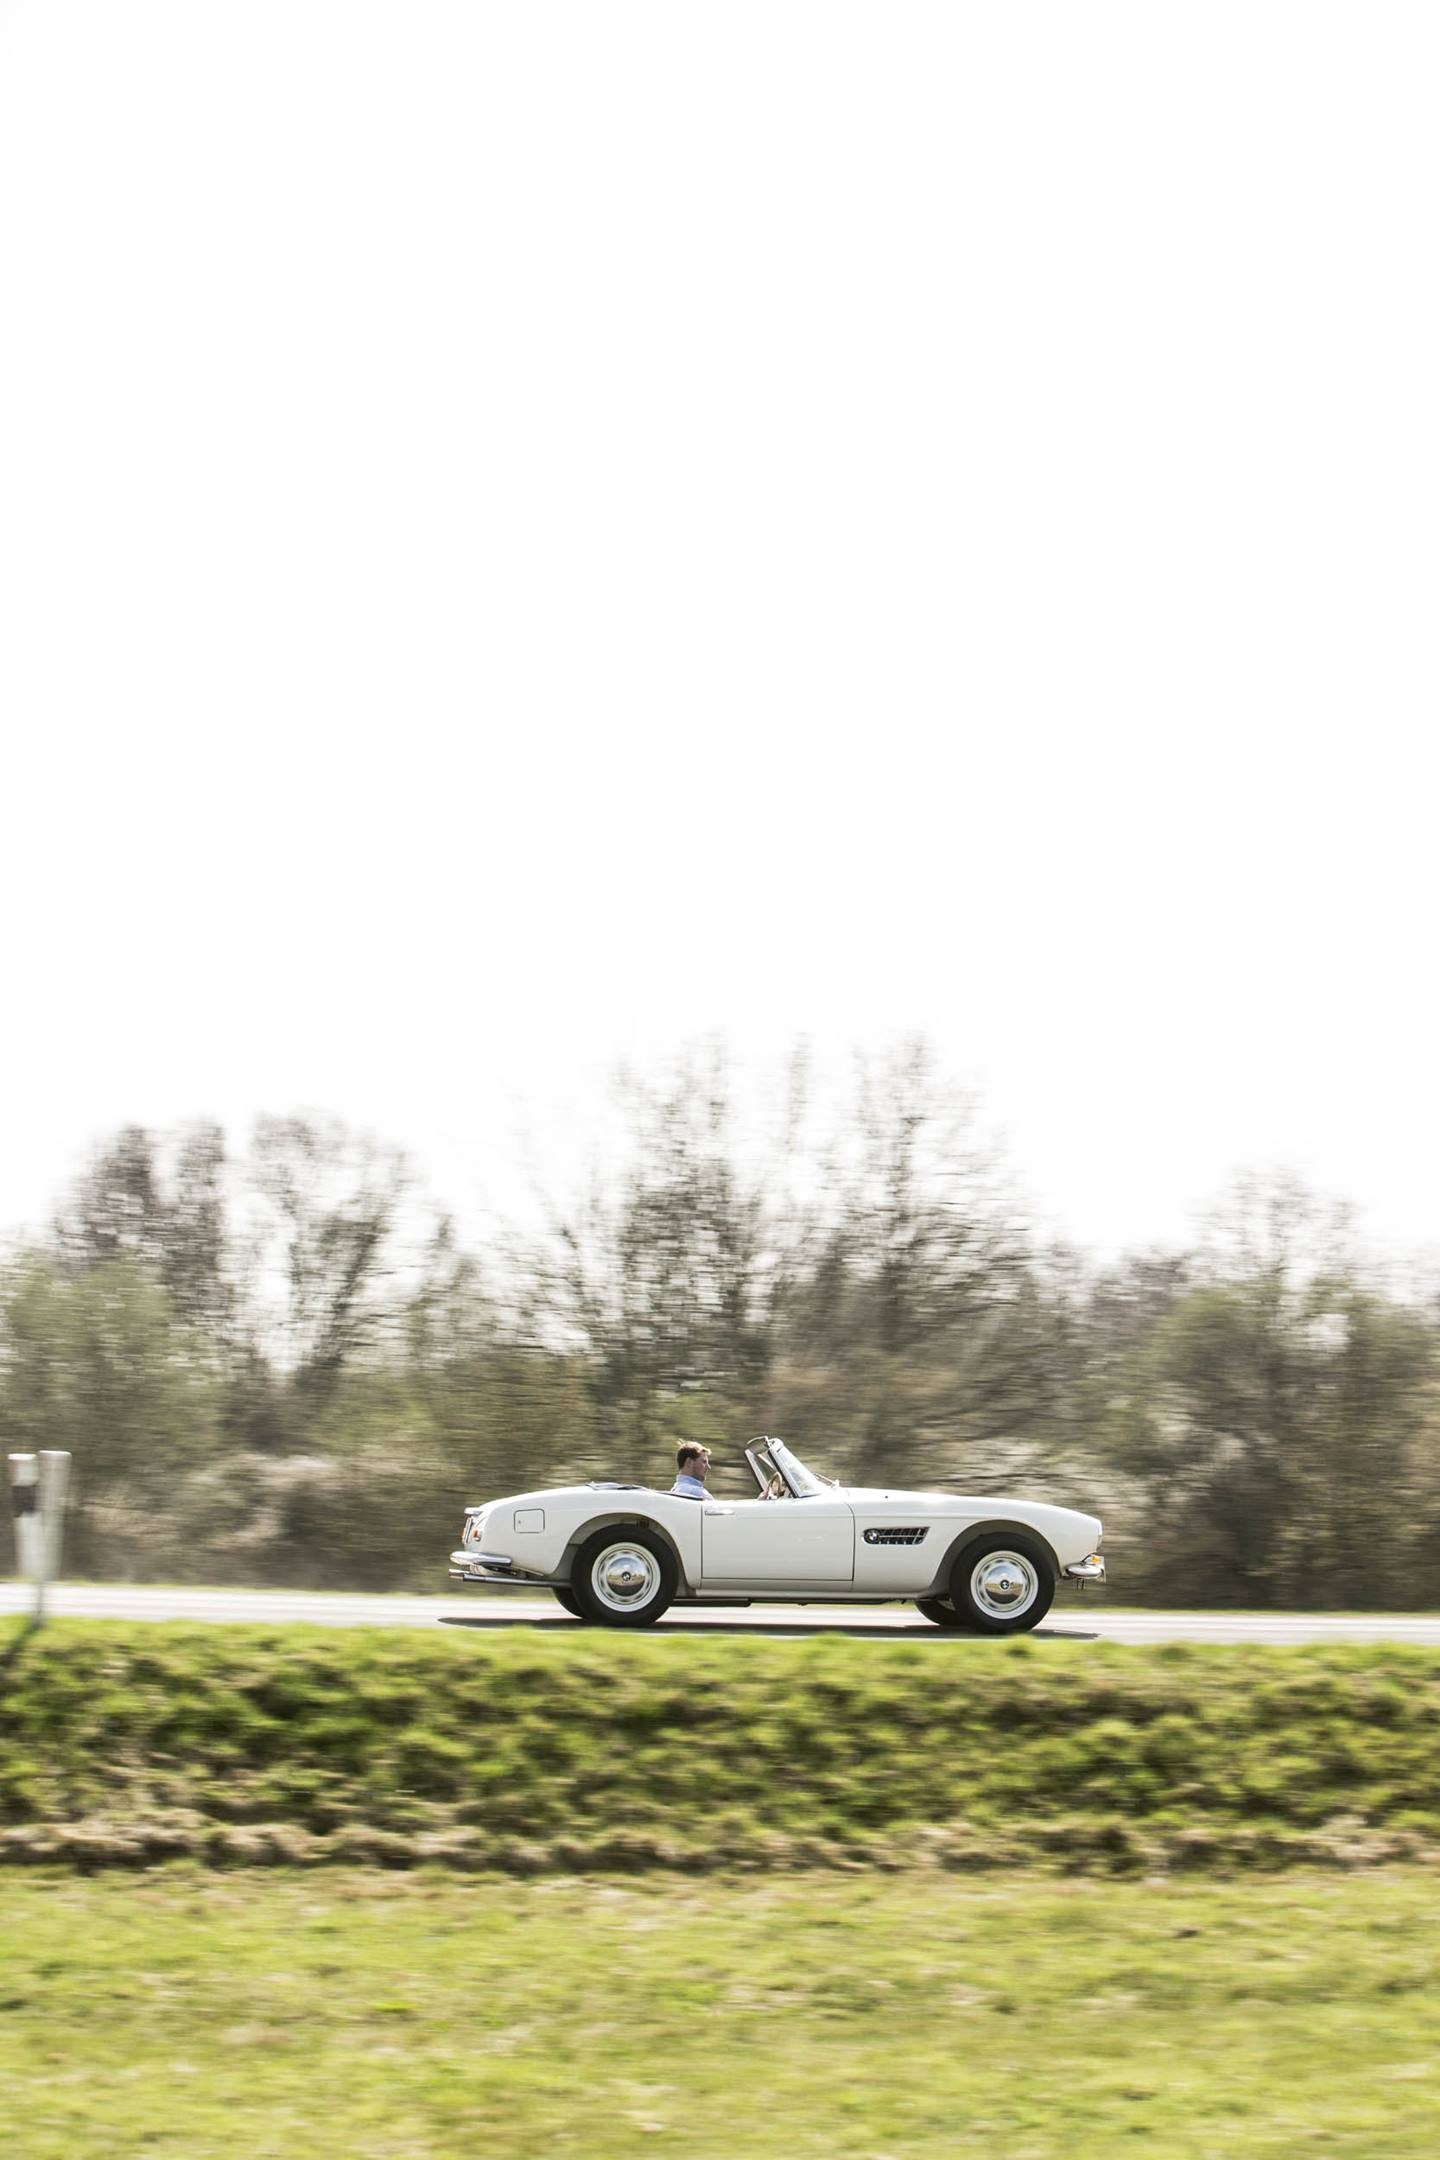 1959 BMW 507 Roadster driving